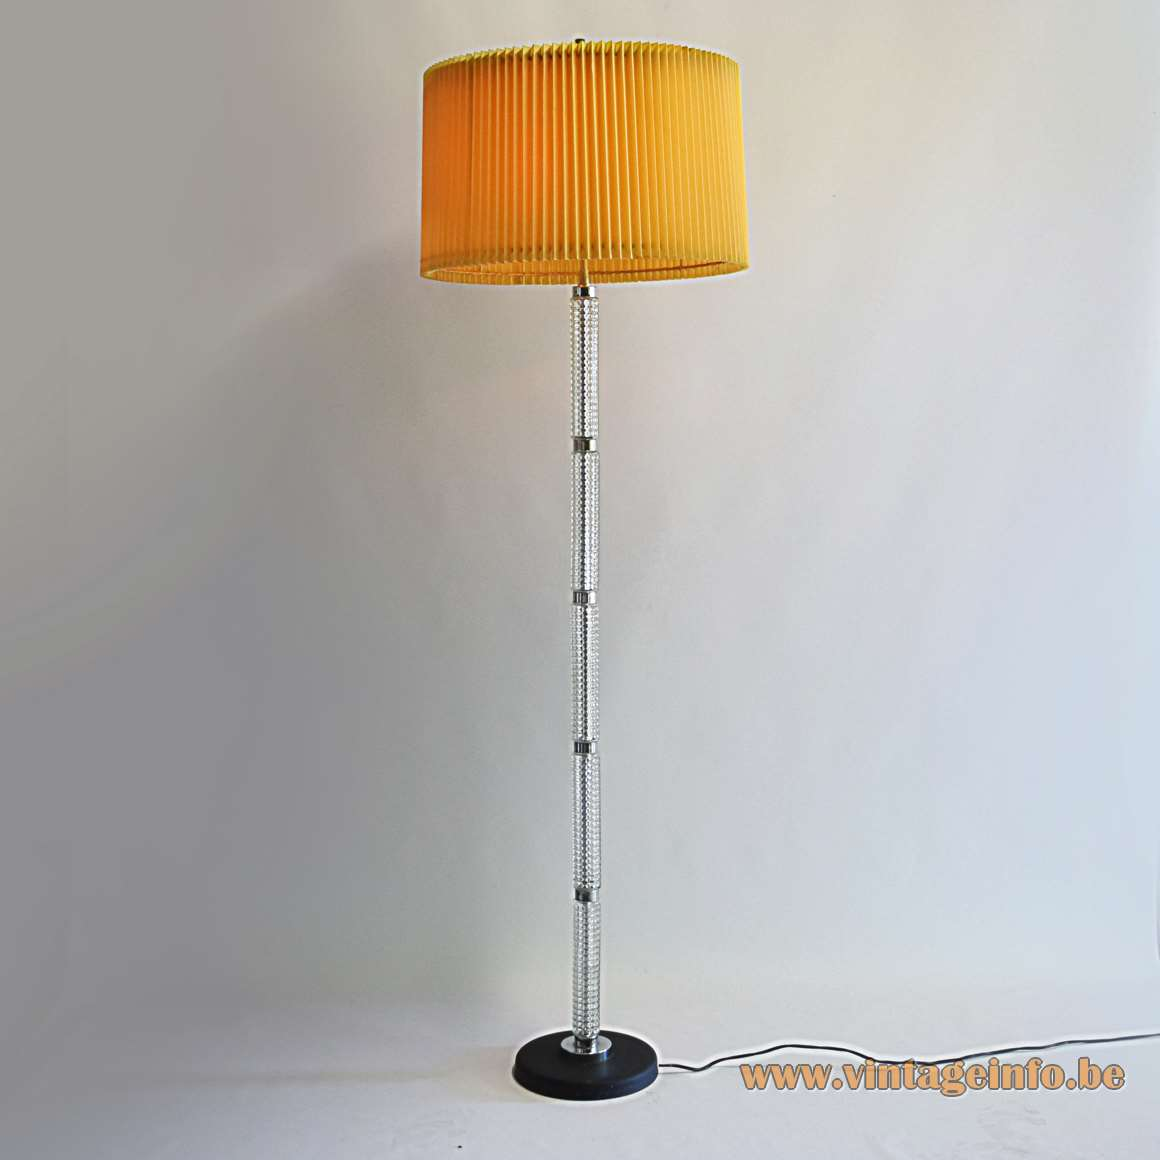 1970s glass tubes floor lamp black round base folded lampshade Richard Essig Massive Belgium 2 E27 sockets